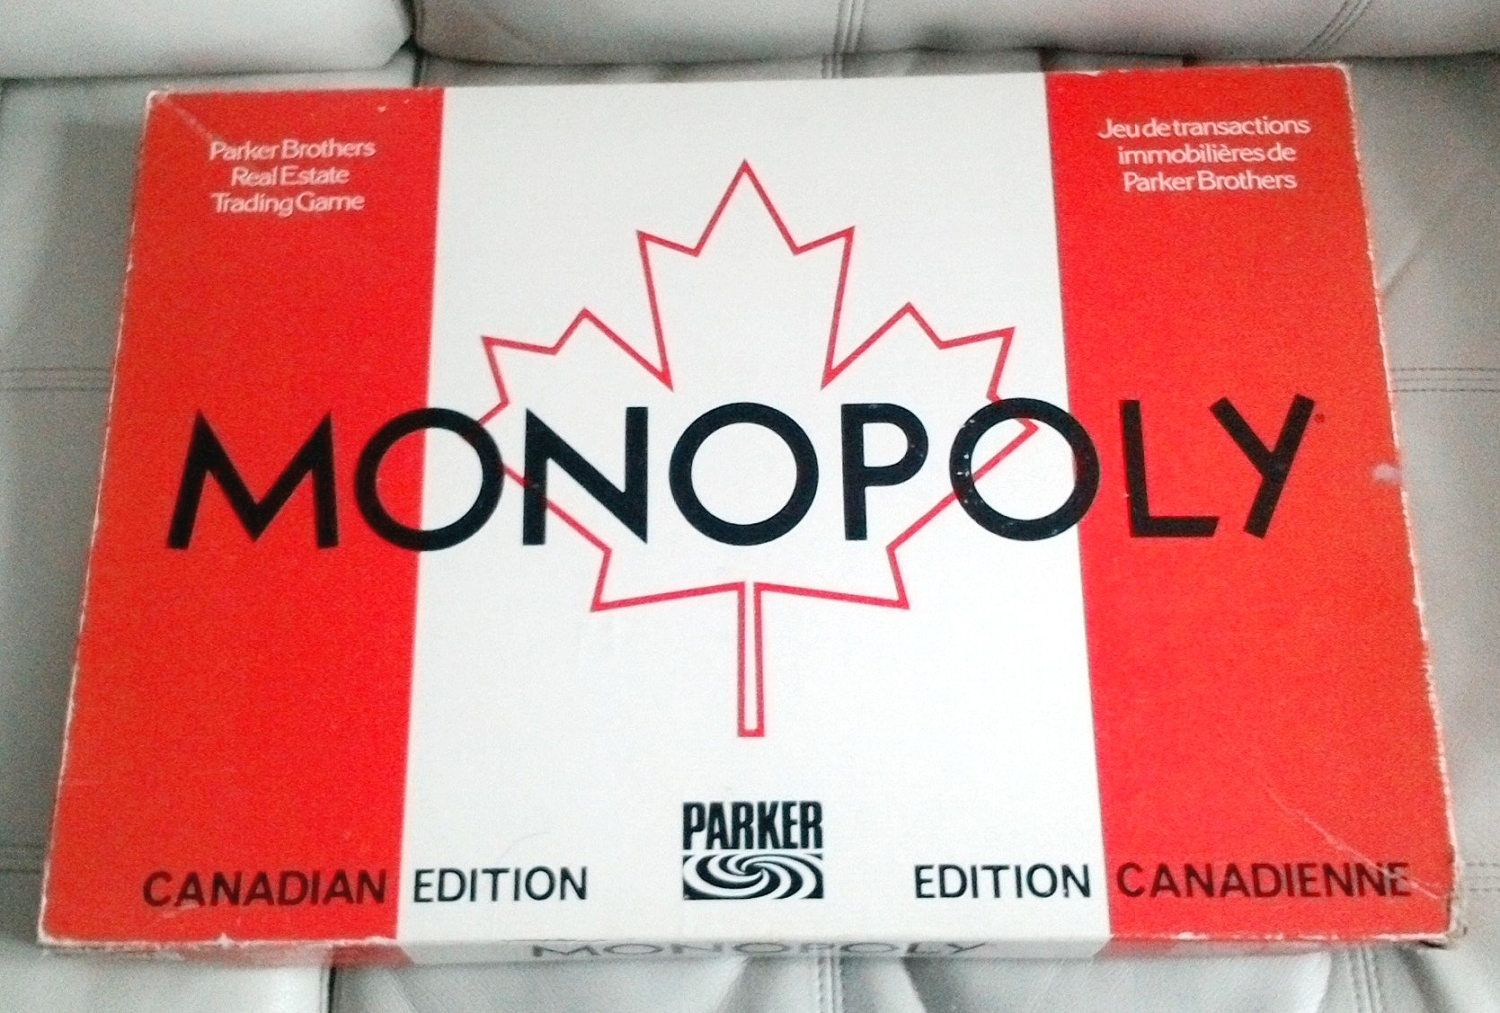 Vintage canadian edition monopoly 1961 100 complete with rules instructions board game bilingual version french